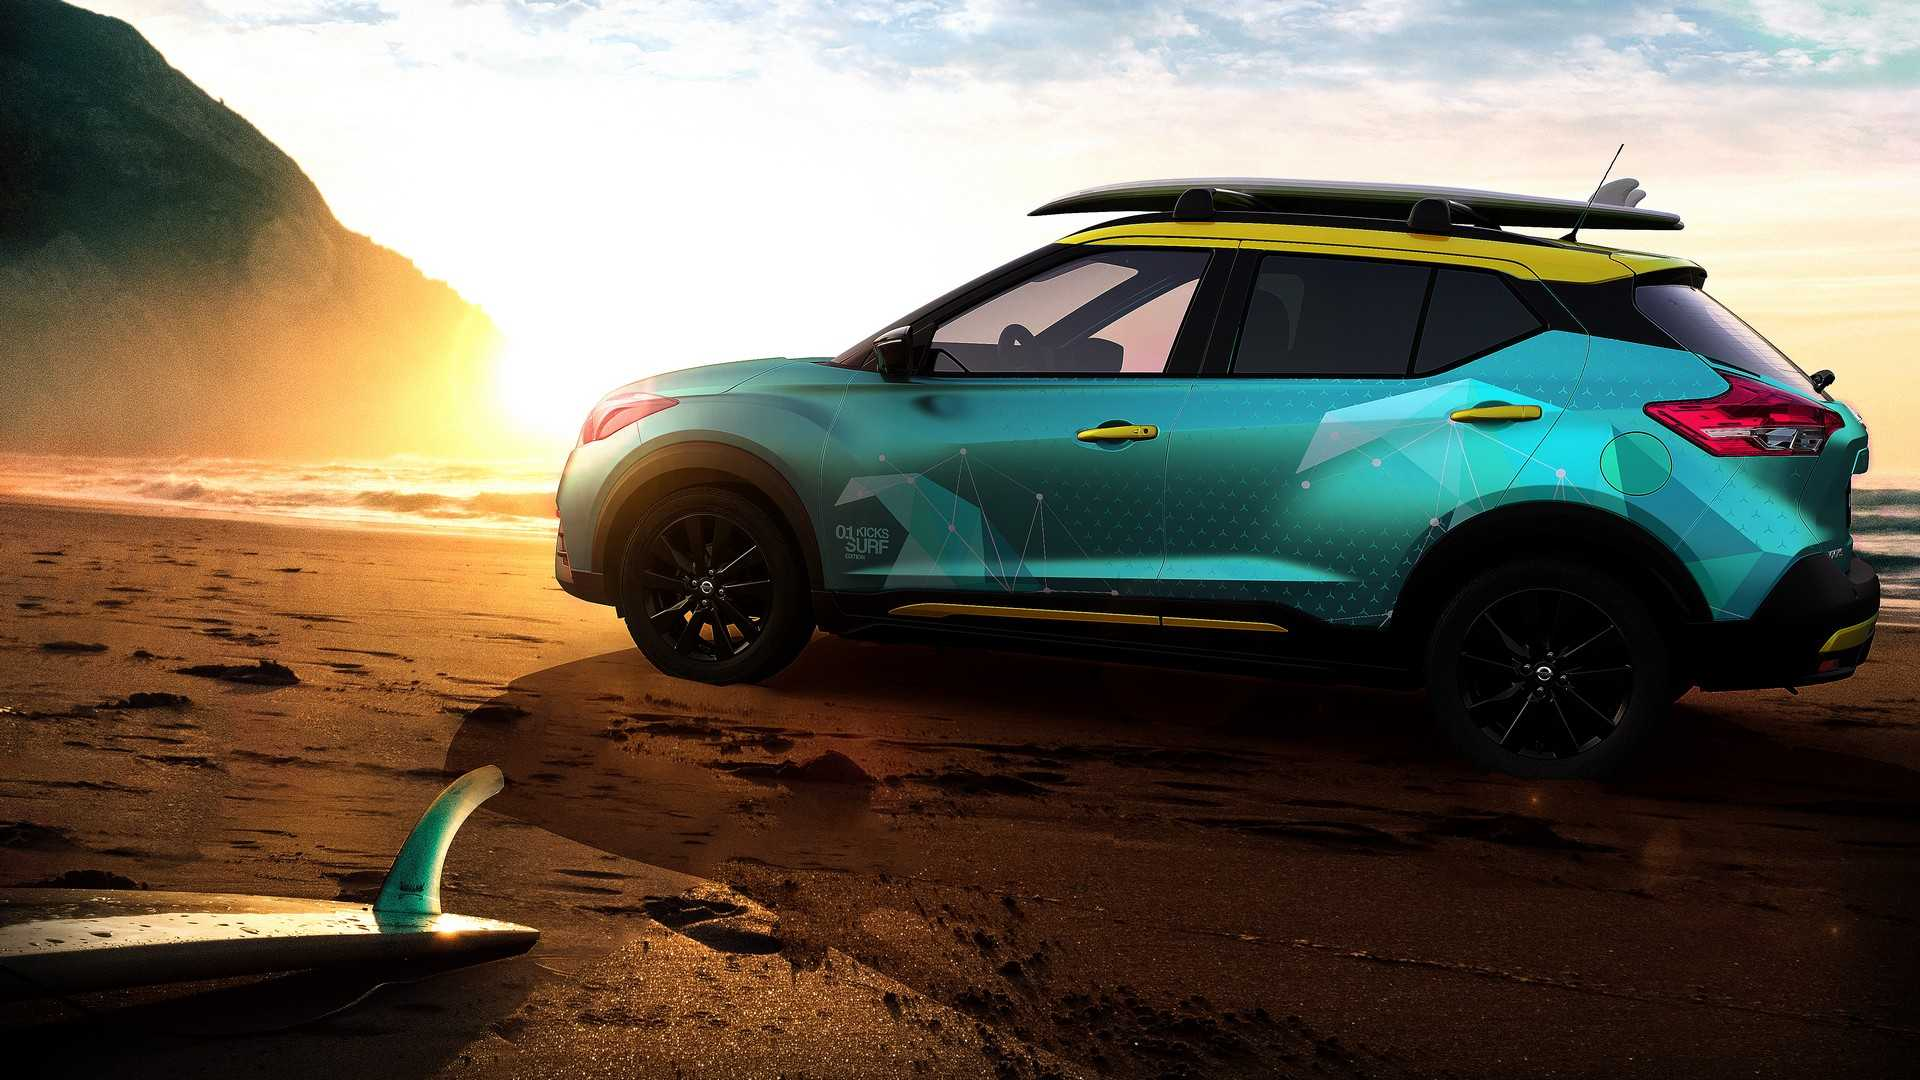 nissan kicks surf concept debuts with portable shower systemNissan Car Concept Kicks #3